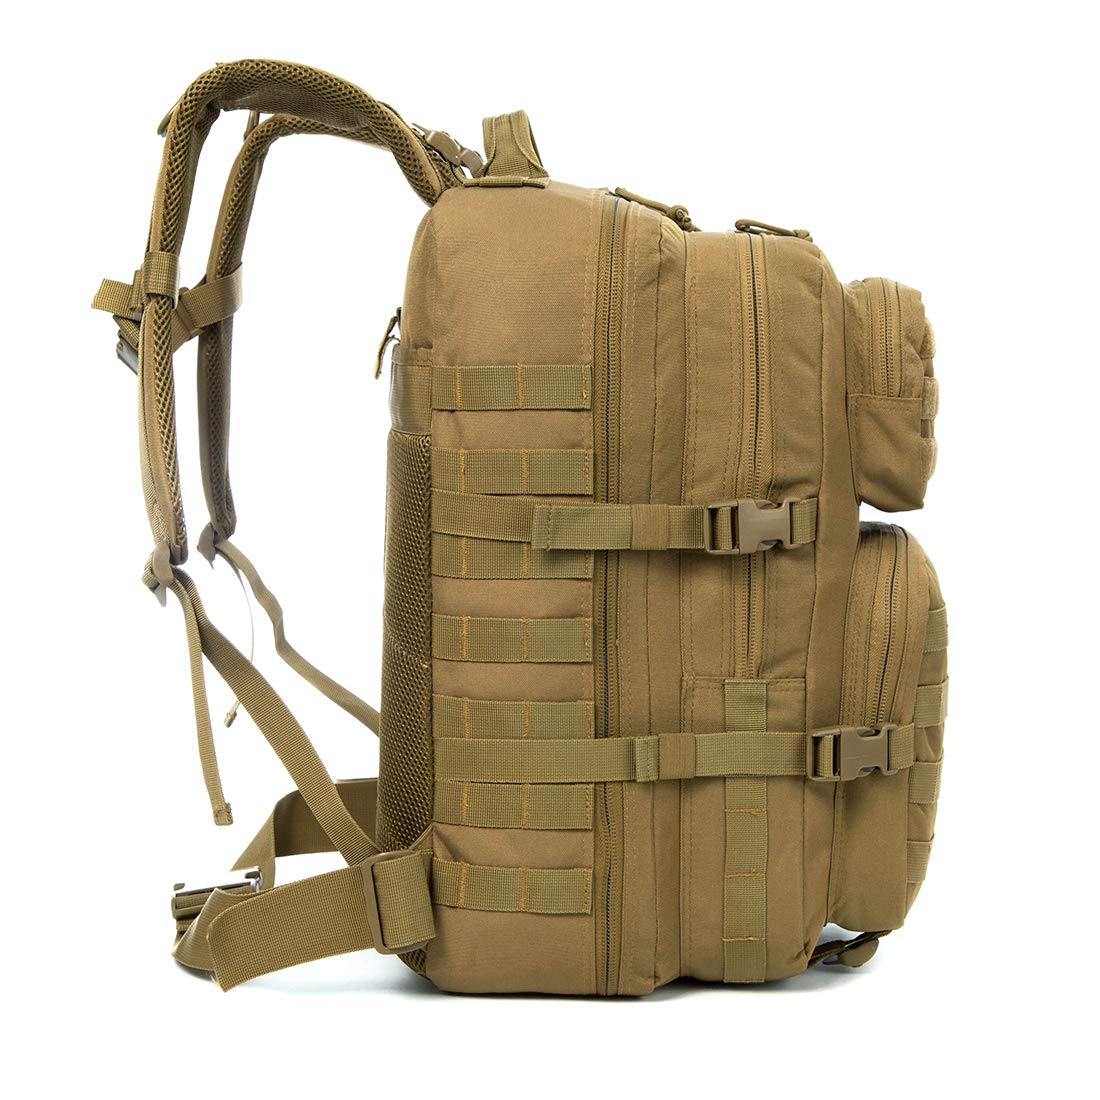 J.CARP Military Tactical Backpack, Large 3 Day Assault Pack, Army Molle Bug Out System, Brown Bag with 2L Hydration Water Bladder